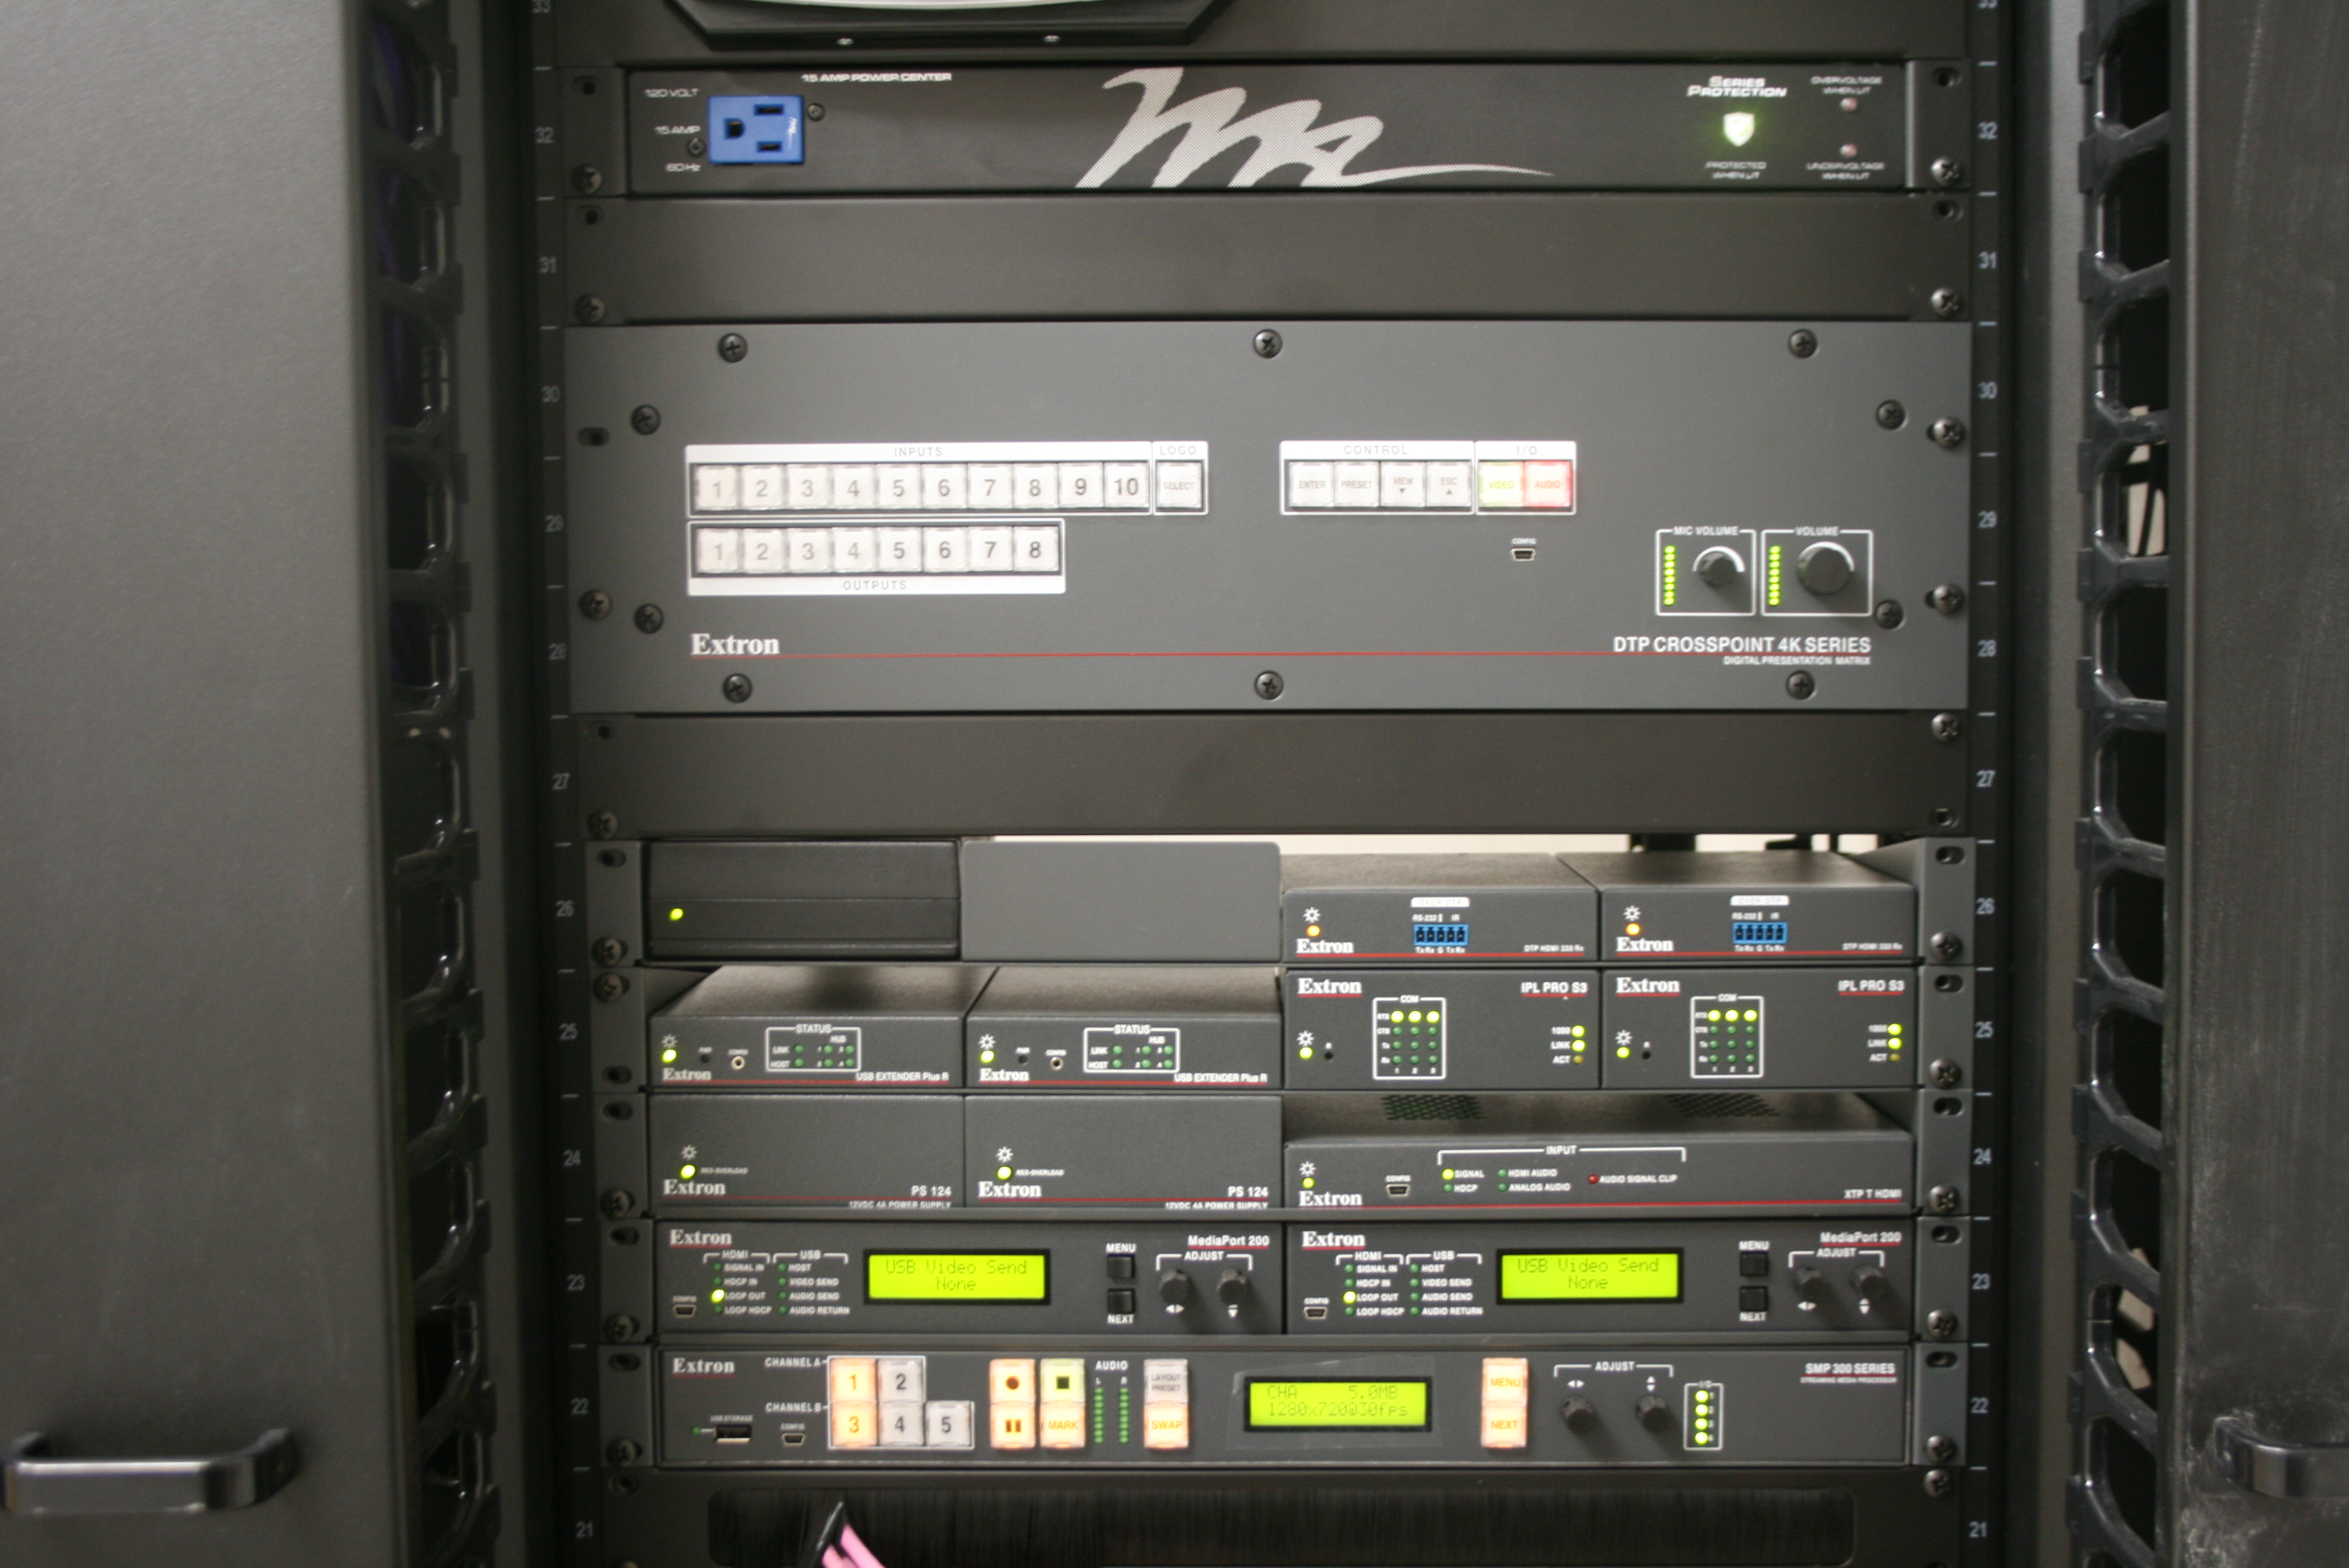 An Extron DTP CrossPoint 4K matrix switcher